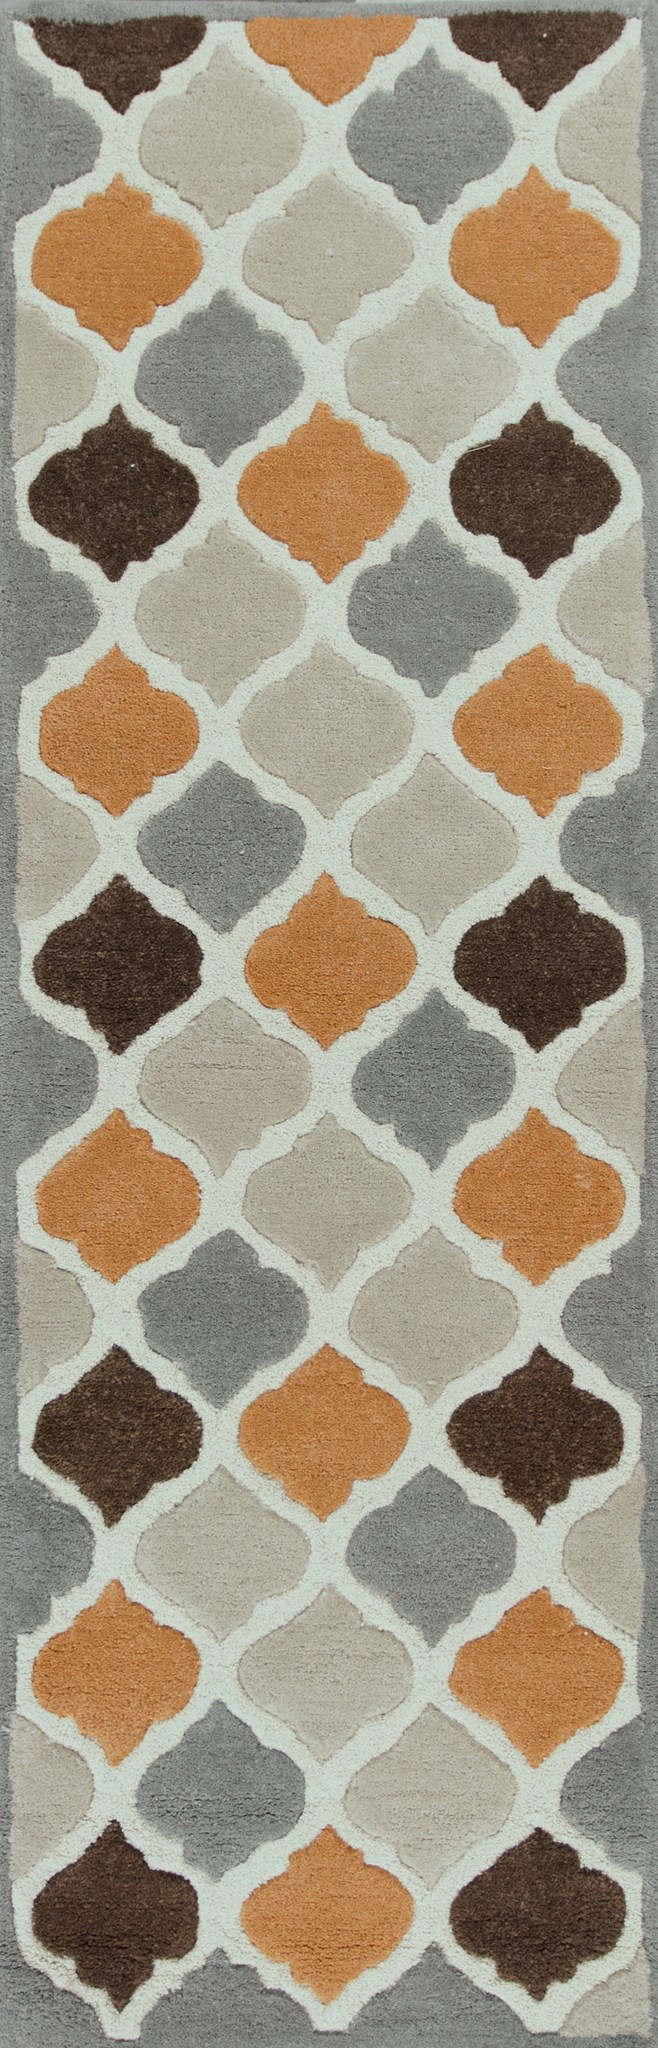 Eternity 1068 Ivory/Spice Arabesque